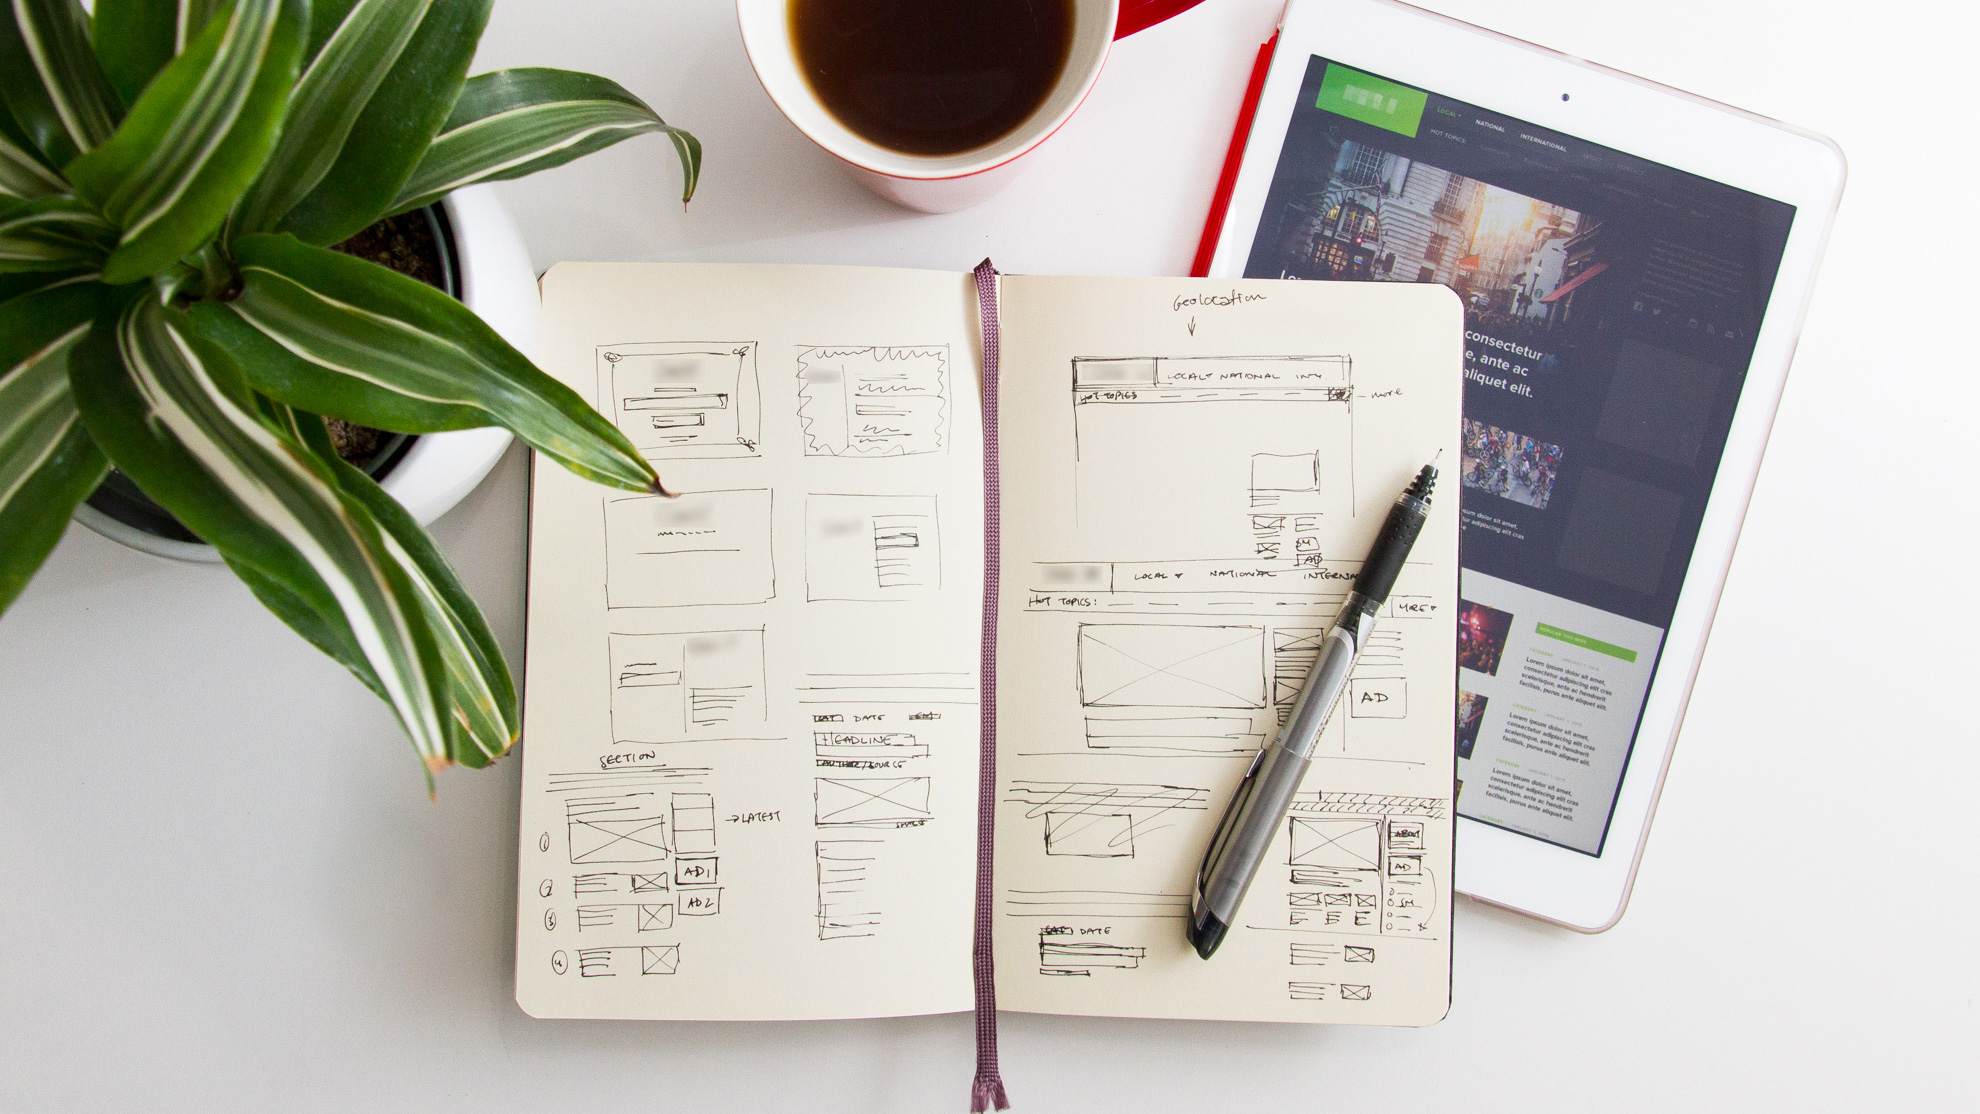 Idea generation and responsive wireframes.